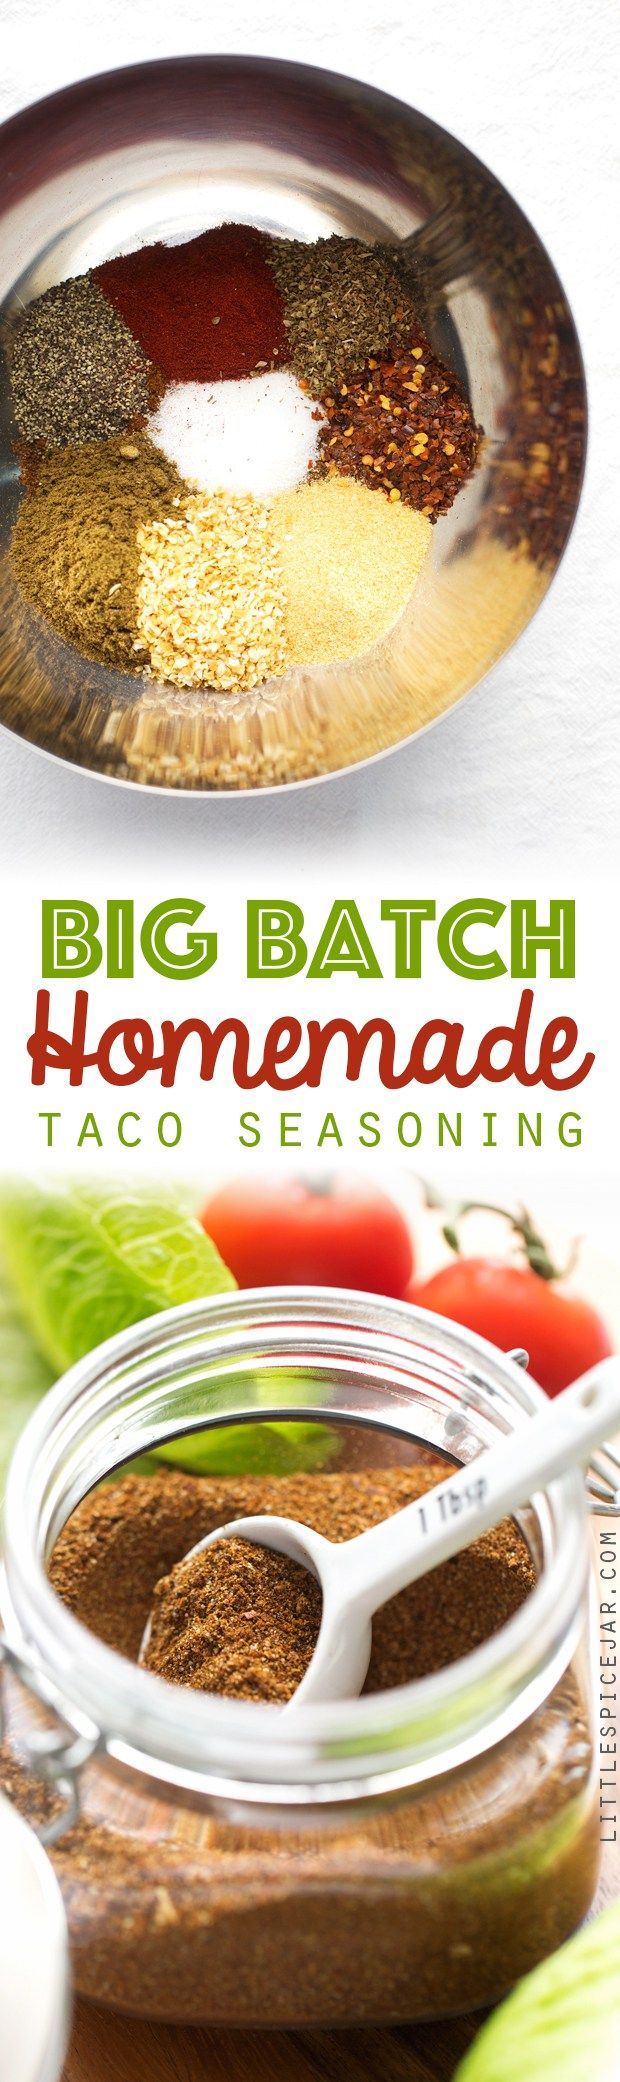 big-batch-homemade-taco-seasoning-4(2)